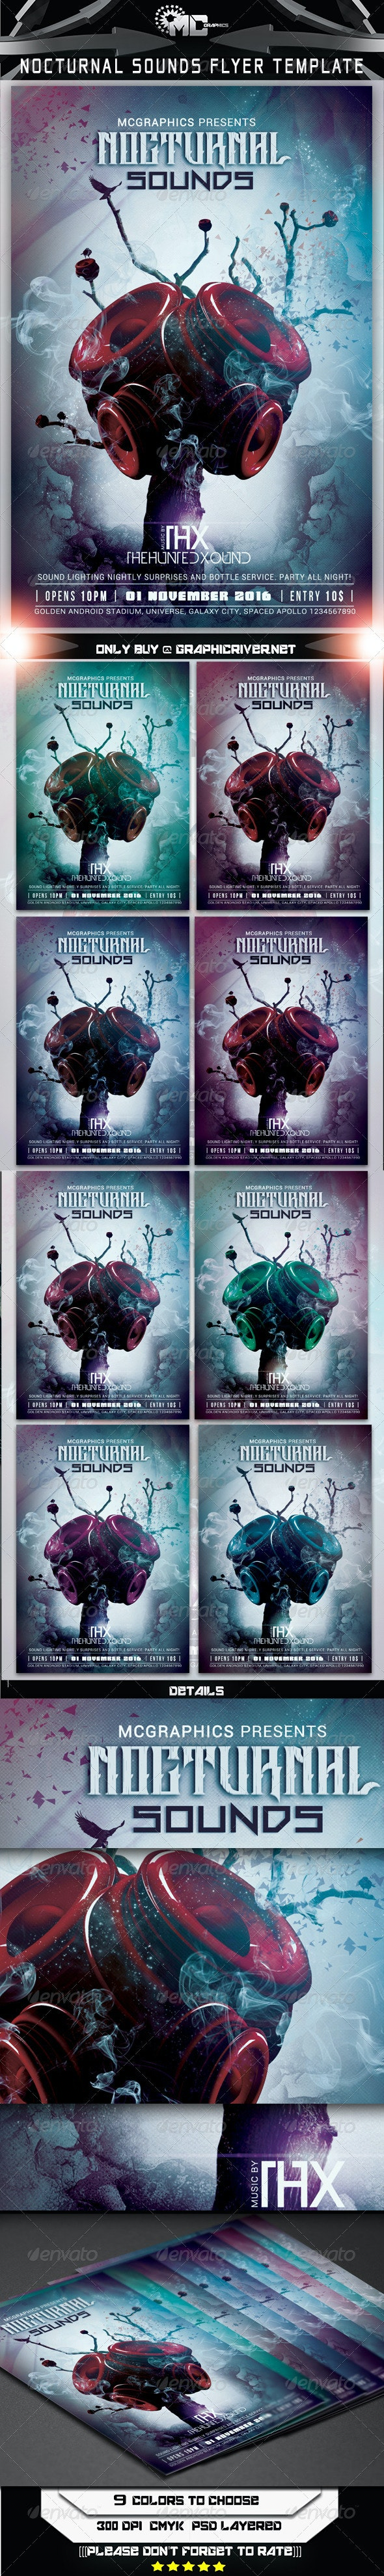 Nocturnal Sounds Flyer Template - Flyers Print Templates